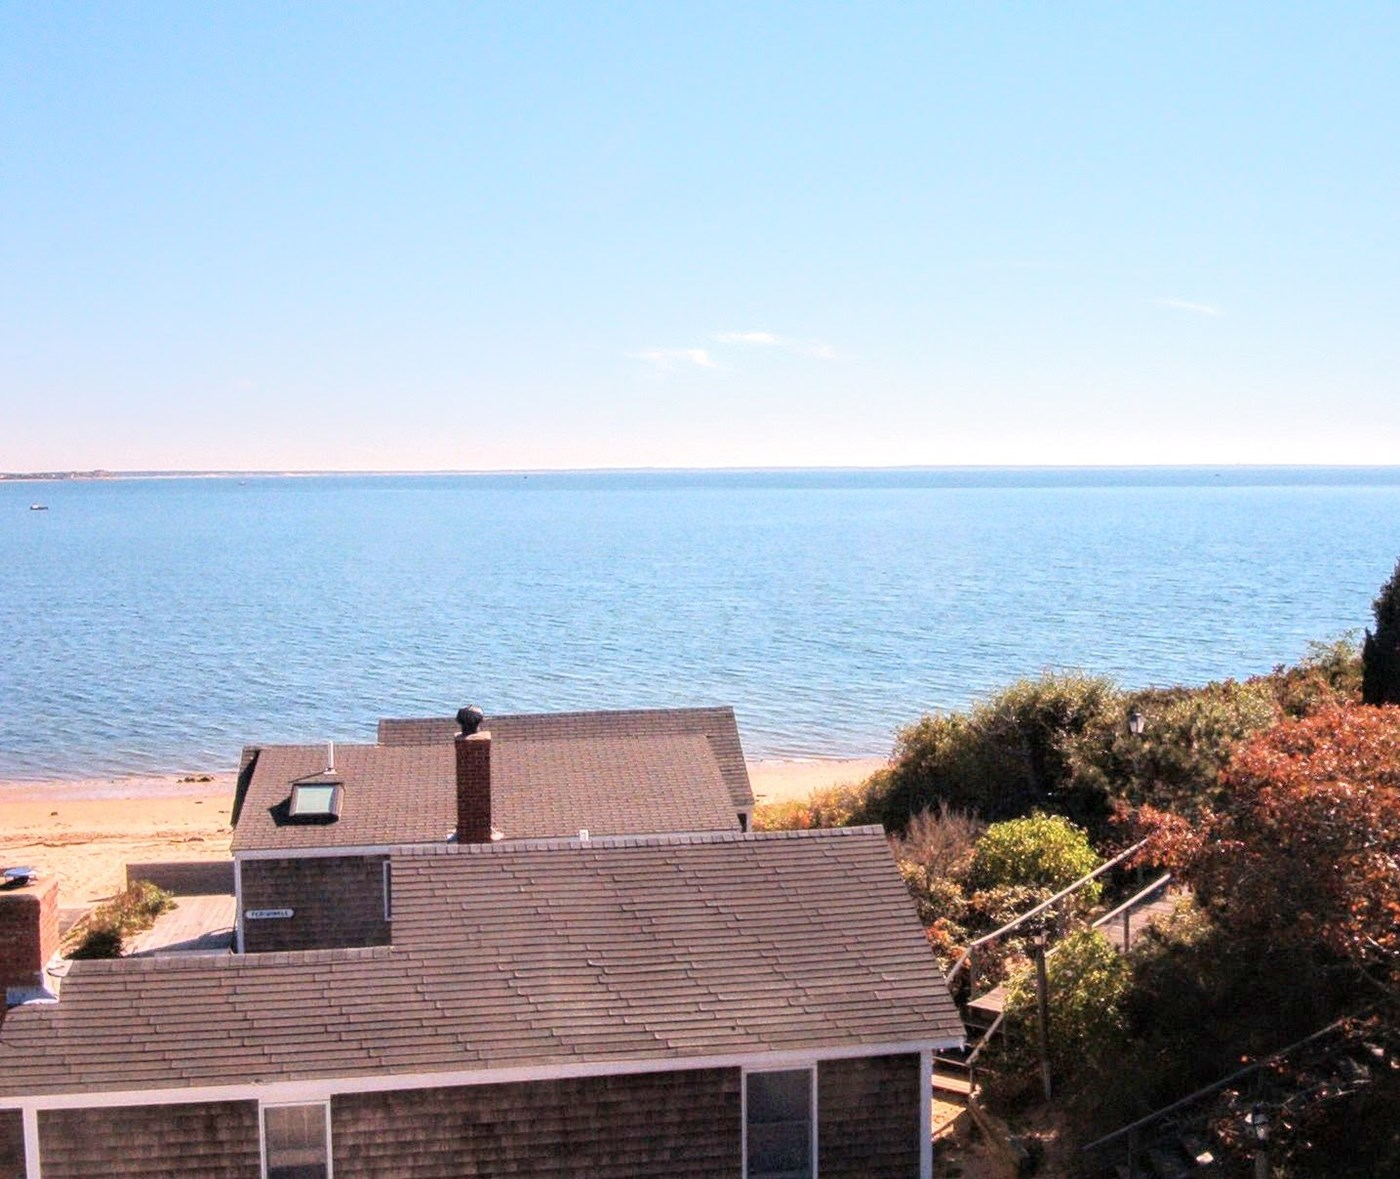 Wellfleet Vacation Rental Home In Cape Cod MA 02667, 30